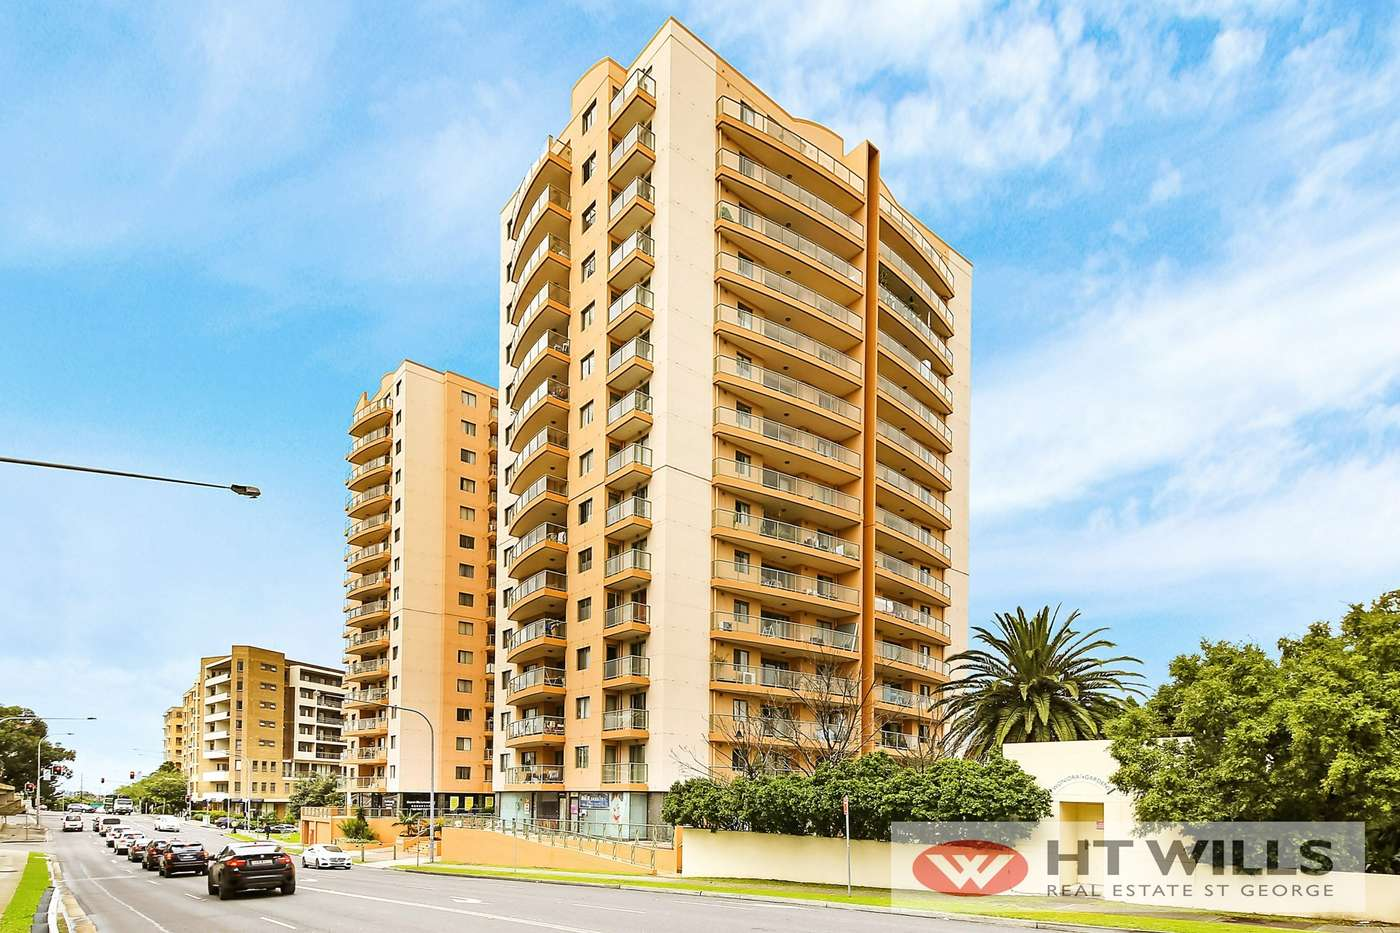 Main view of Homely unit listing, 1204/588a-600 Railway Parade, Hurstville, NSW 2220